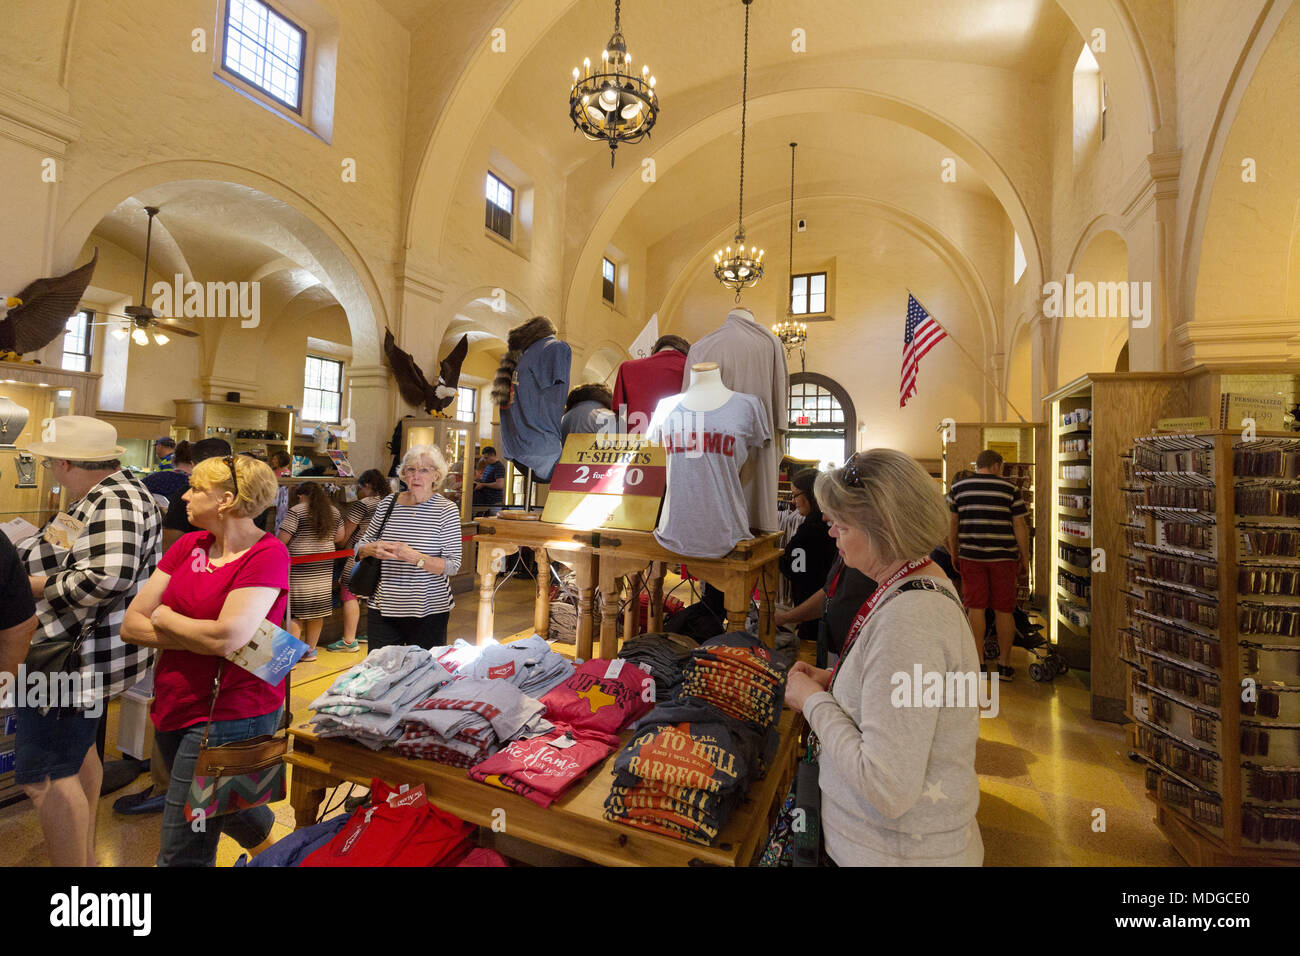 People shopping for gifts and souvenirs in the Alamo Gift Shop, the Alamo, San Antonio, Texas USA - Stock Image